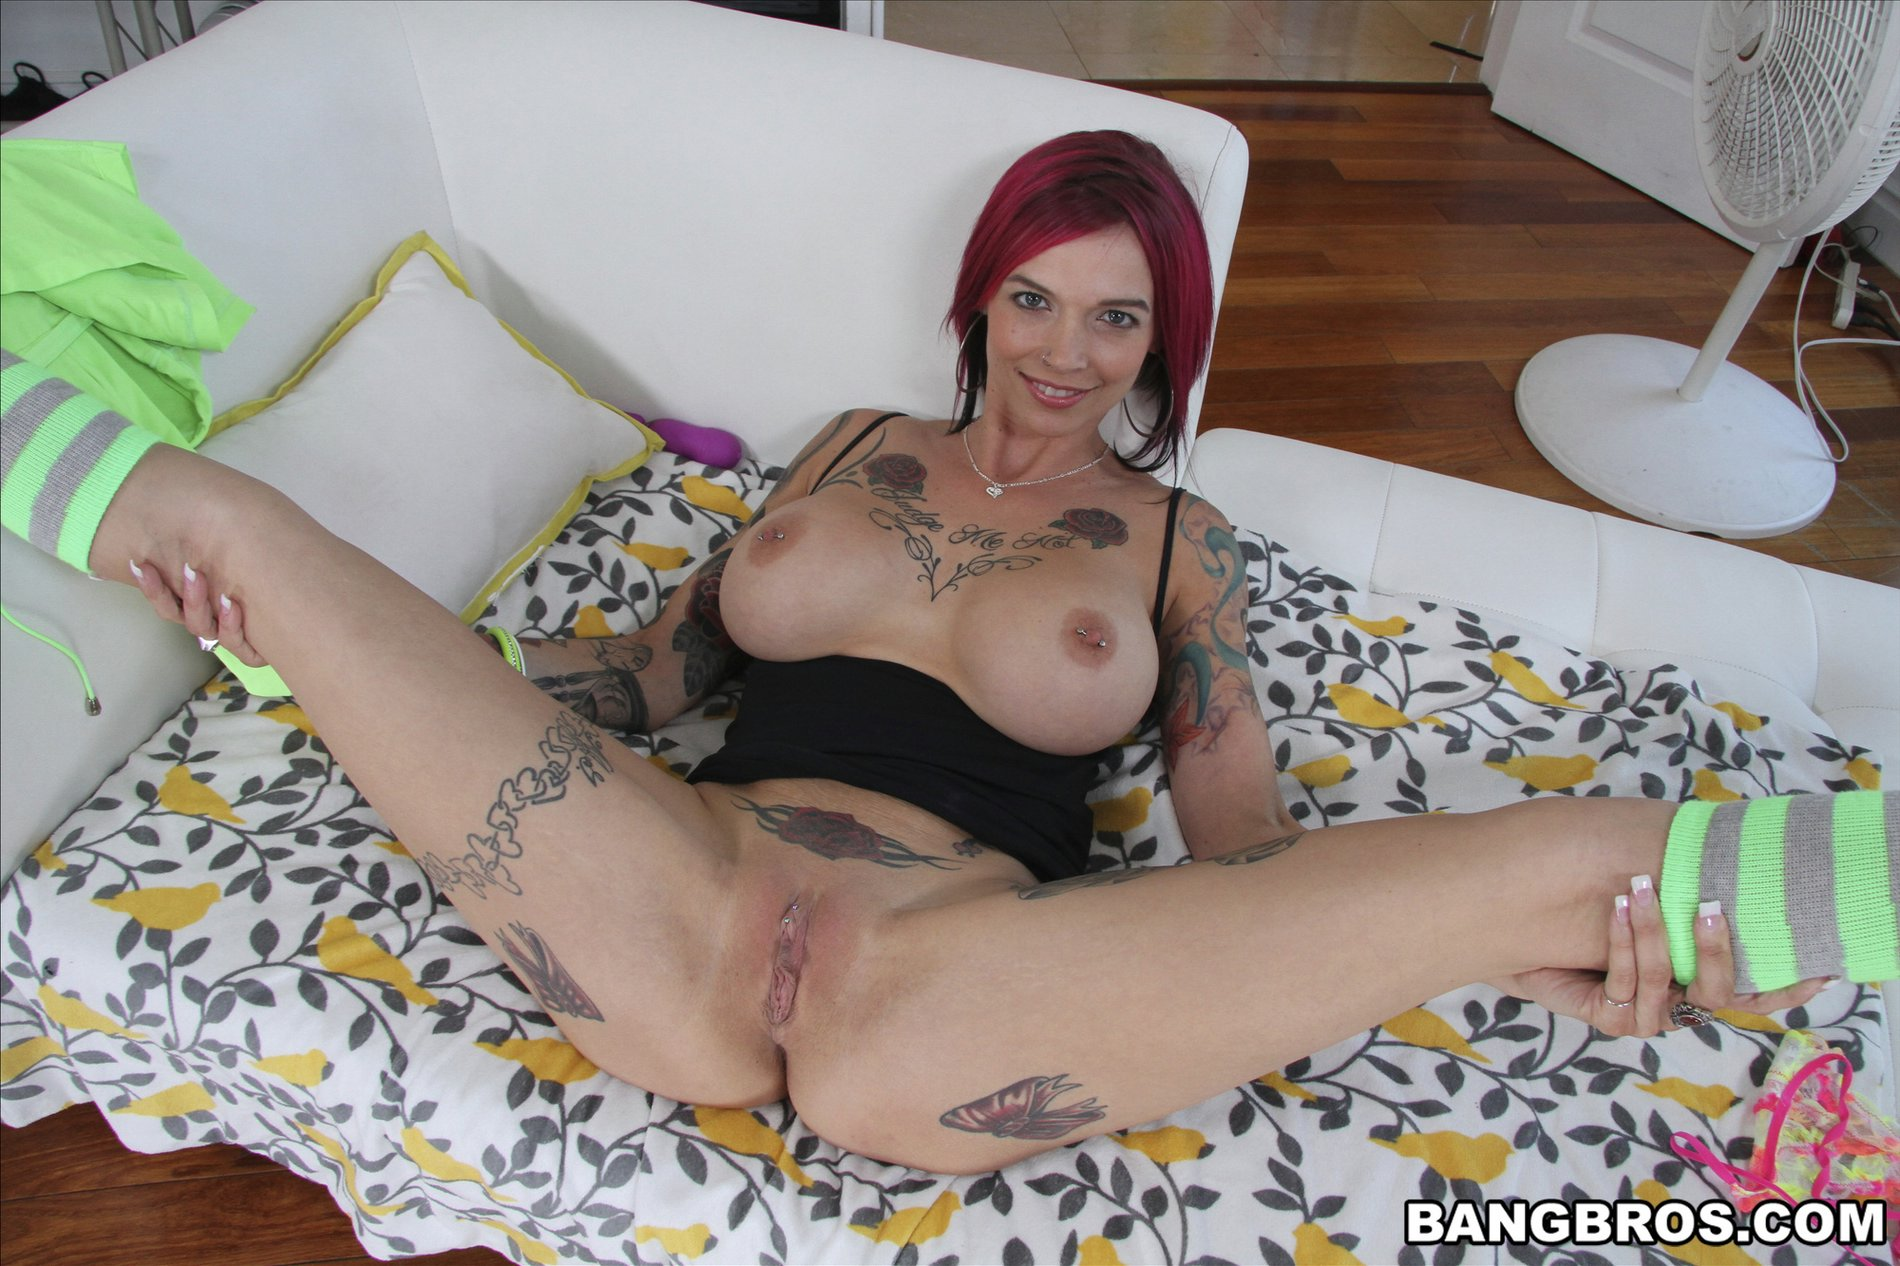 Pity, redhead wet pussy milf consider, that